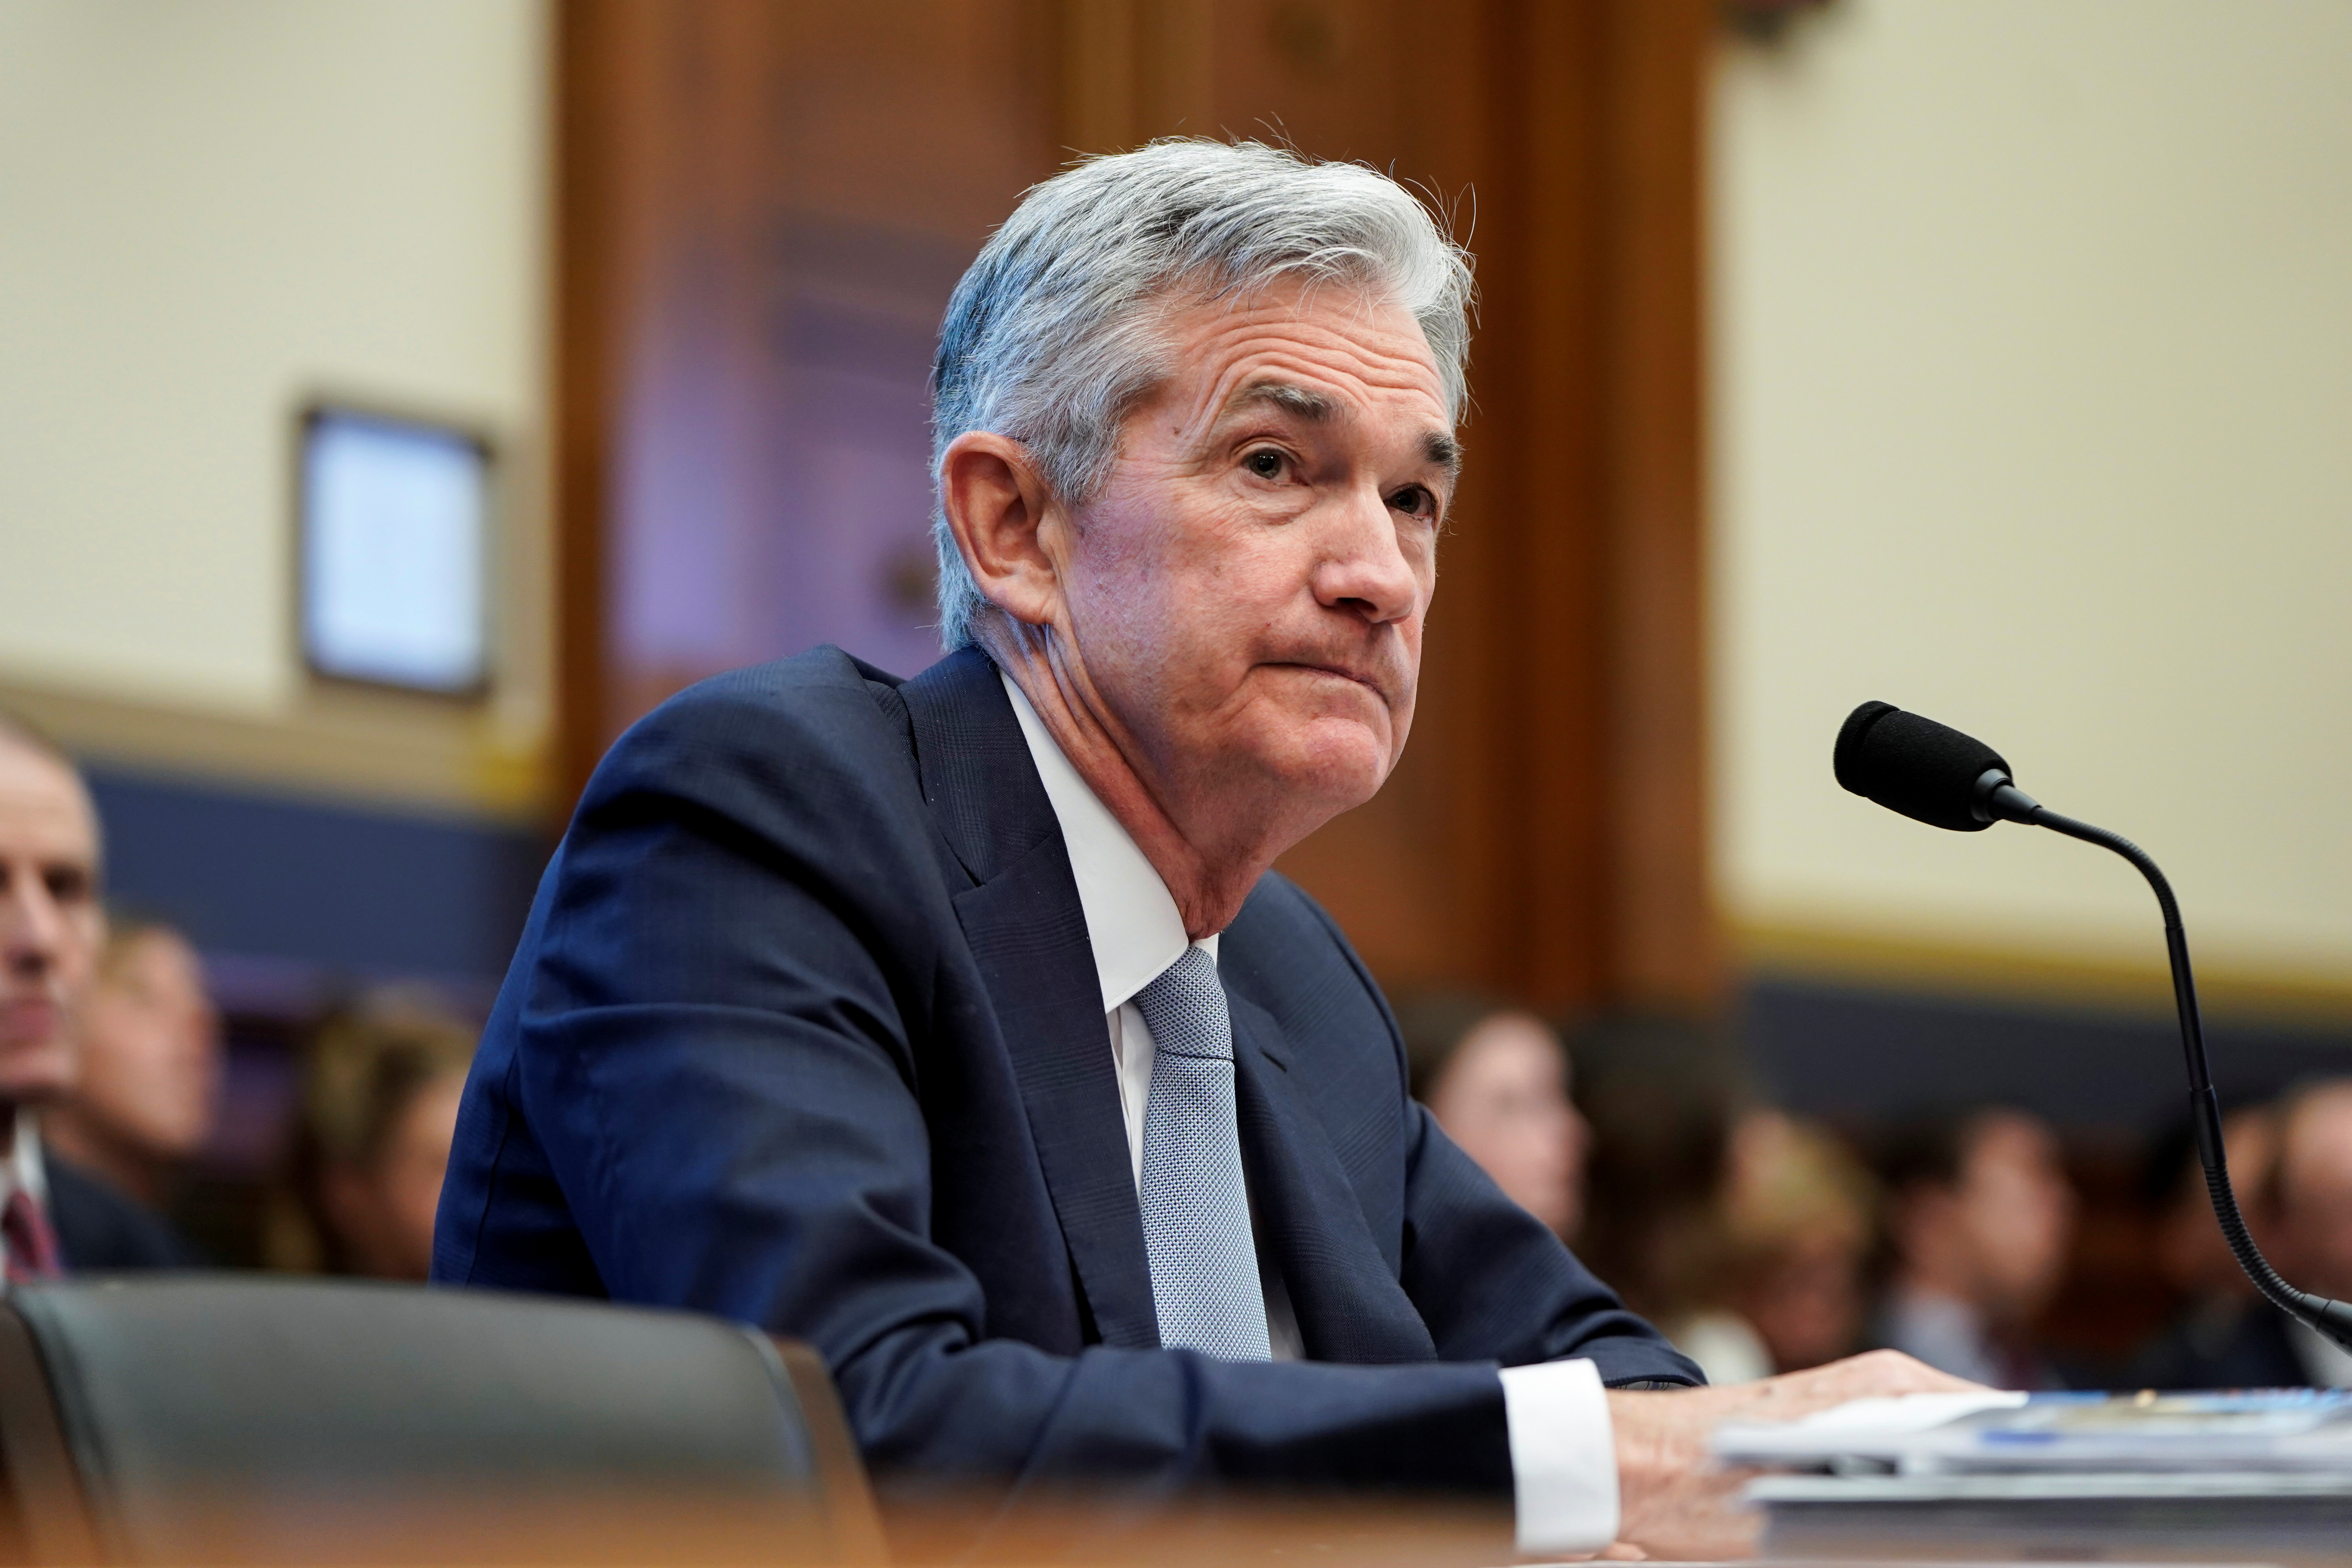 Powell Put? Fed chief Powell says market volatility can impact economy